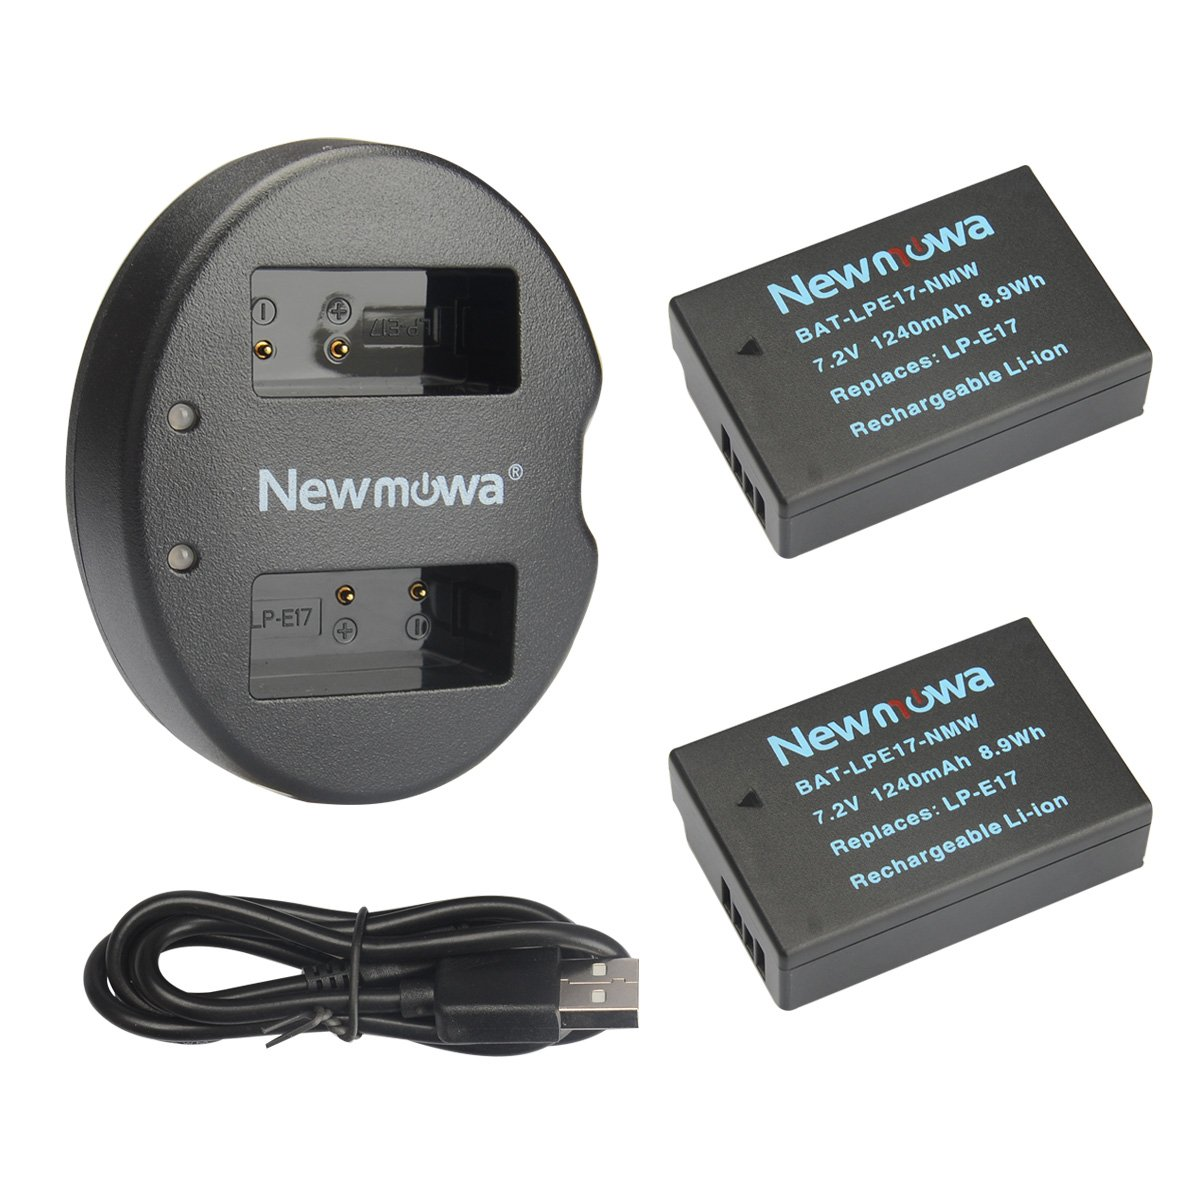 Newmowa LP-E17 Battery (2 pack) and Dual USB Charger Kit for Canon EOS M3 750D 760D Rebel T6i T6s 8000D Kiss X8i Digital Cameras